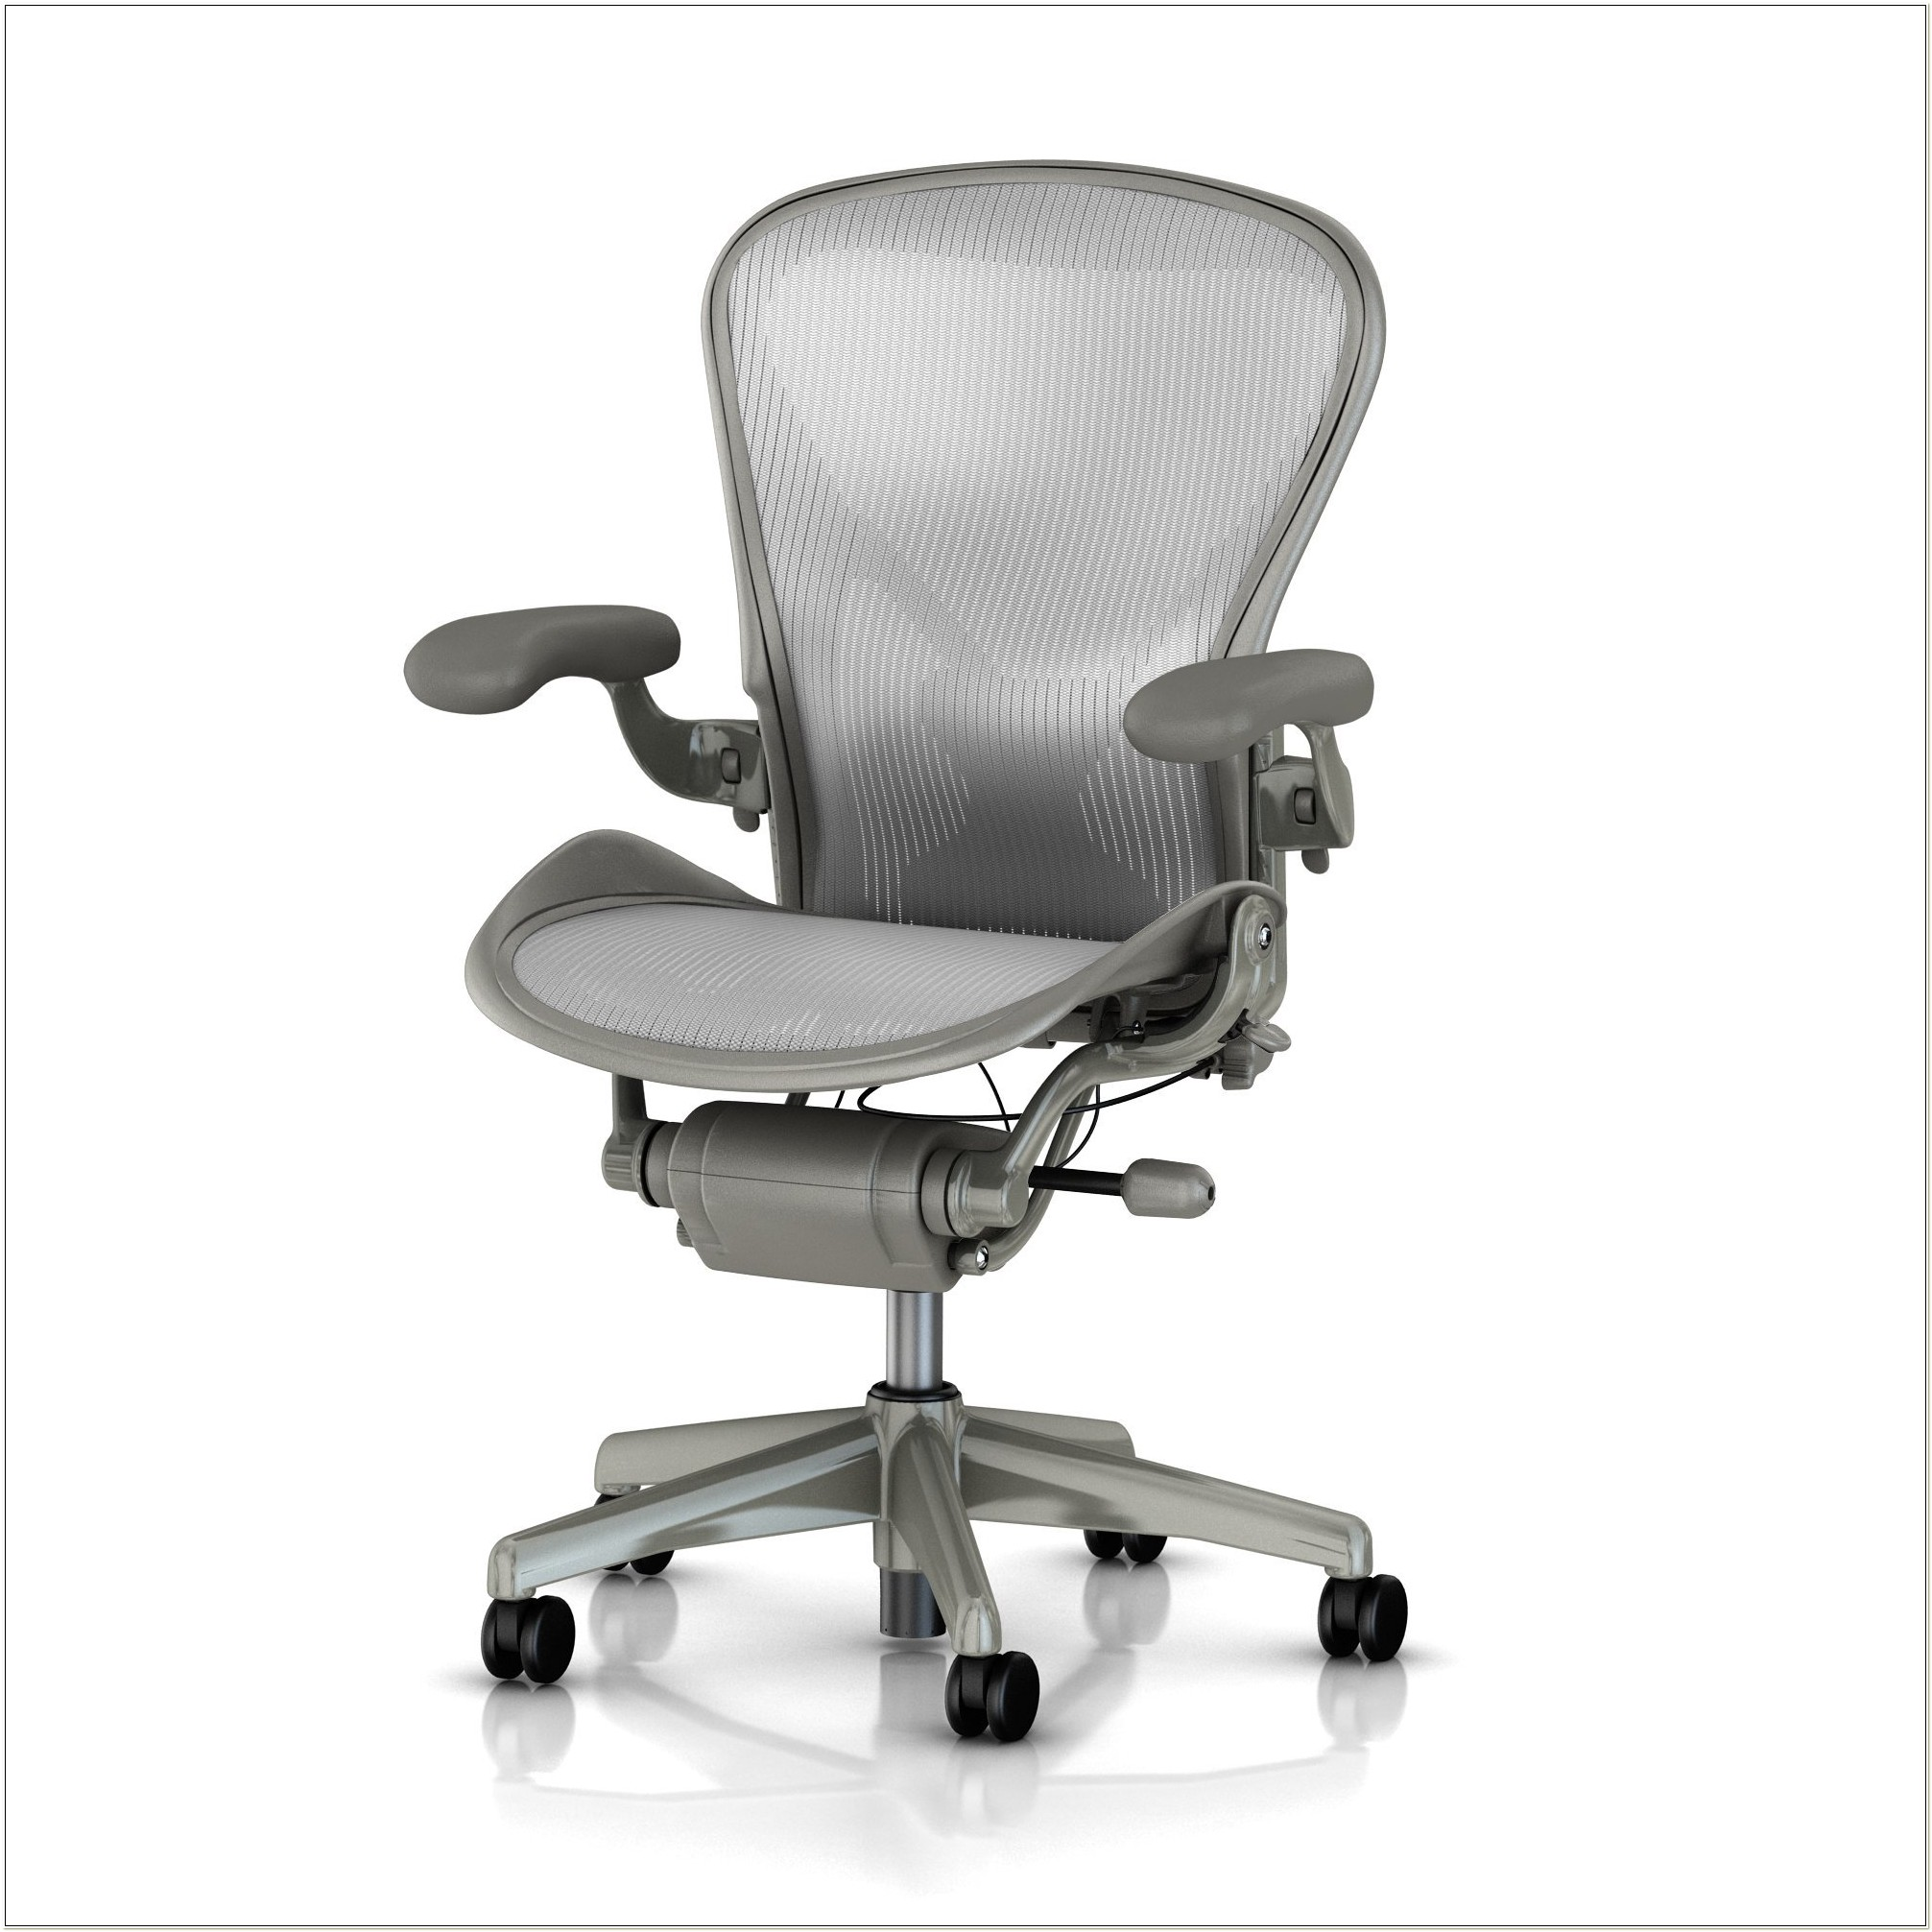 Herman Miller Aeron Chair Cleaning Instructions